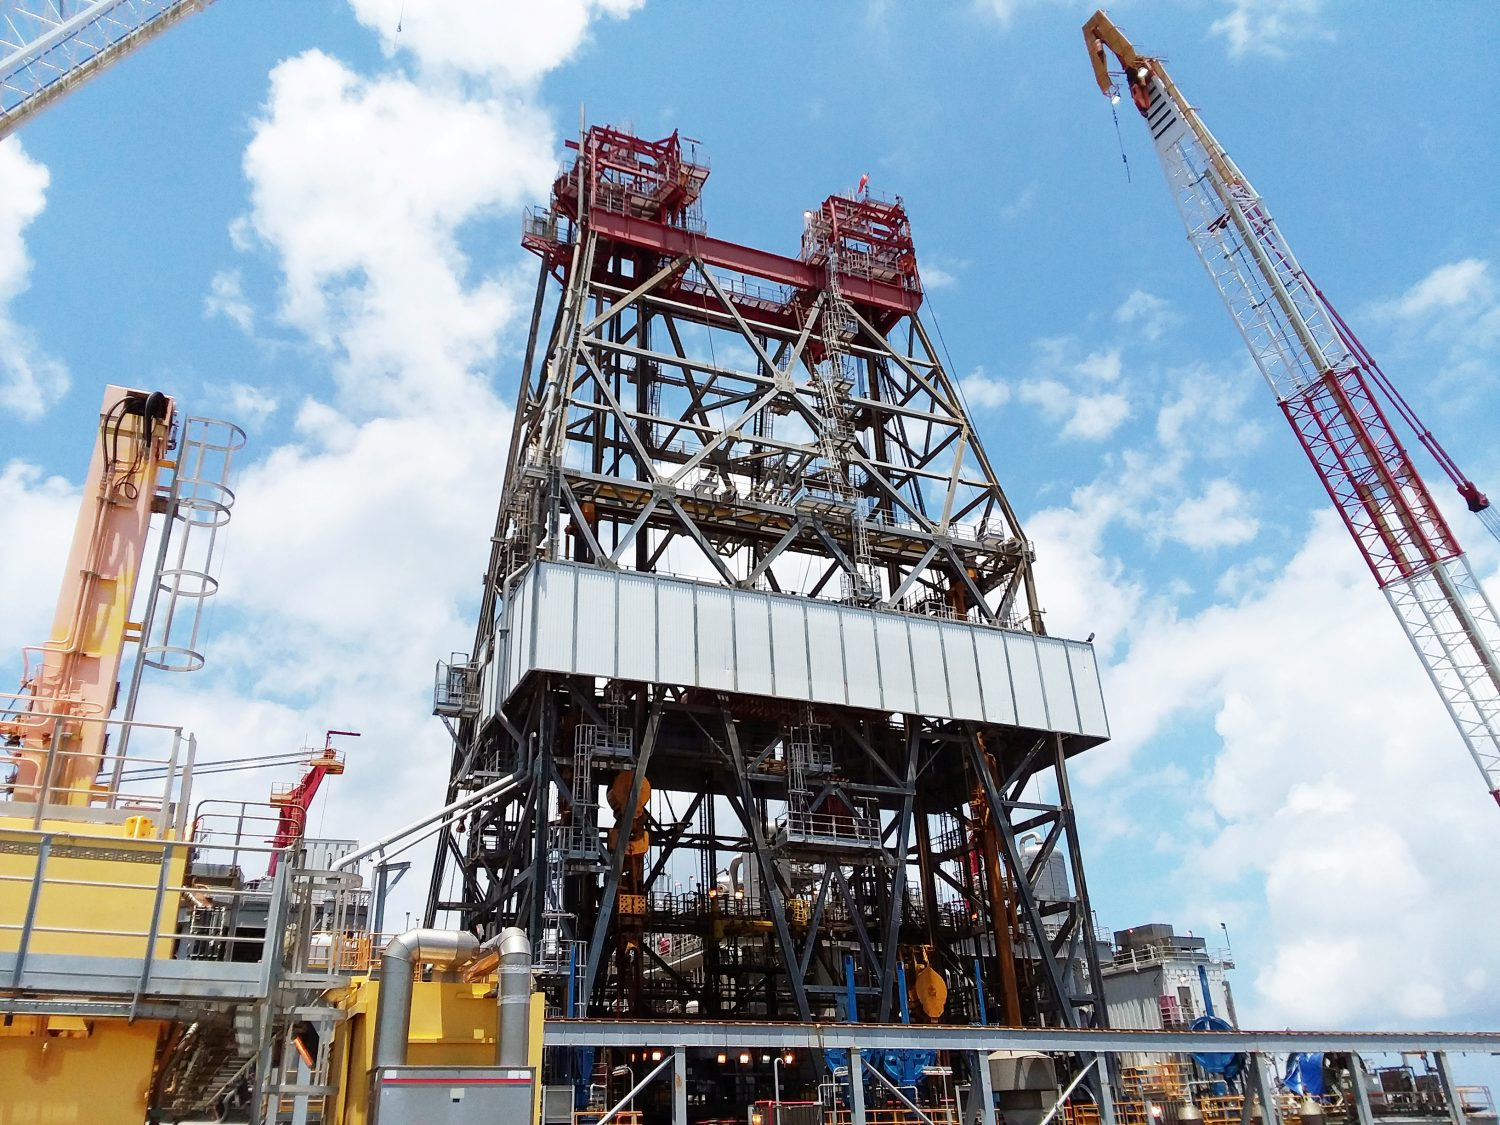 FILE PHOTO: A massive drilling derrick is pictured on BP's Thunder Horse Oil Platform in the Gulf of Mexico, 150 miles from the Louisiana coast, May 11, 2017. REUTERS/Jessica Resnick-Ault/File Photo